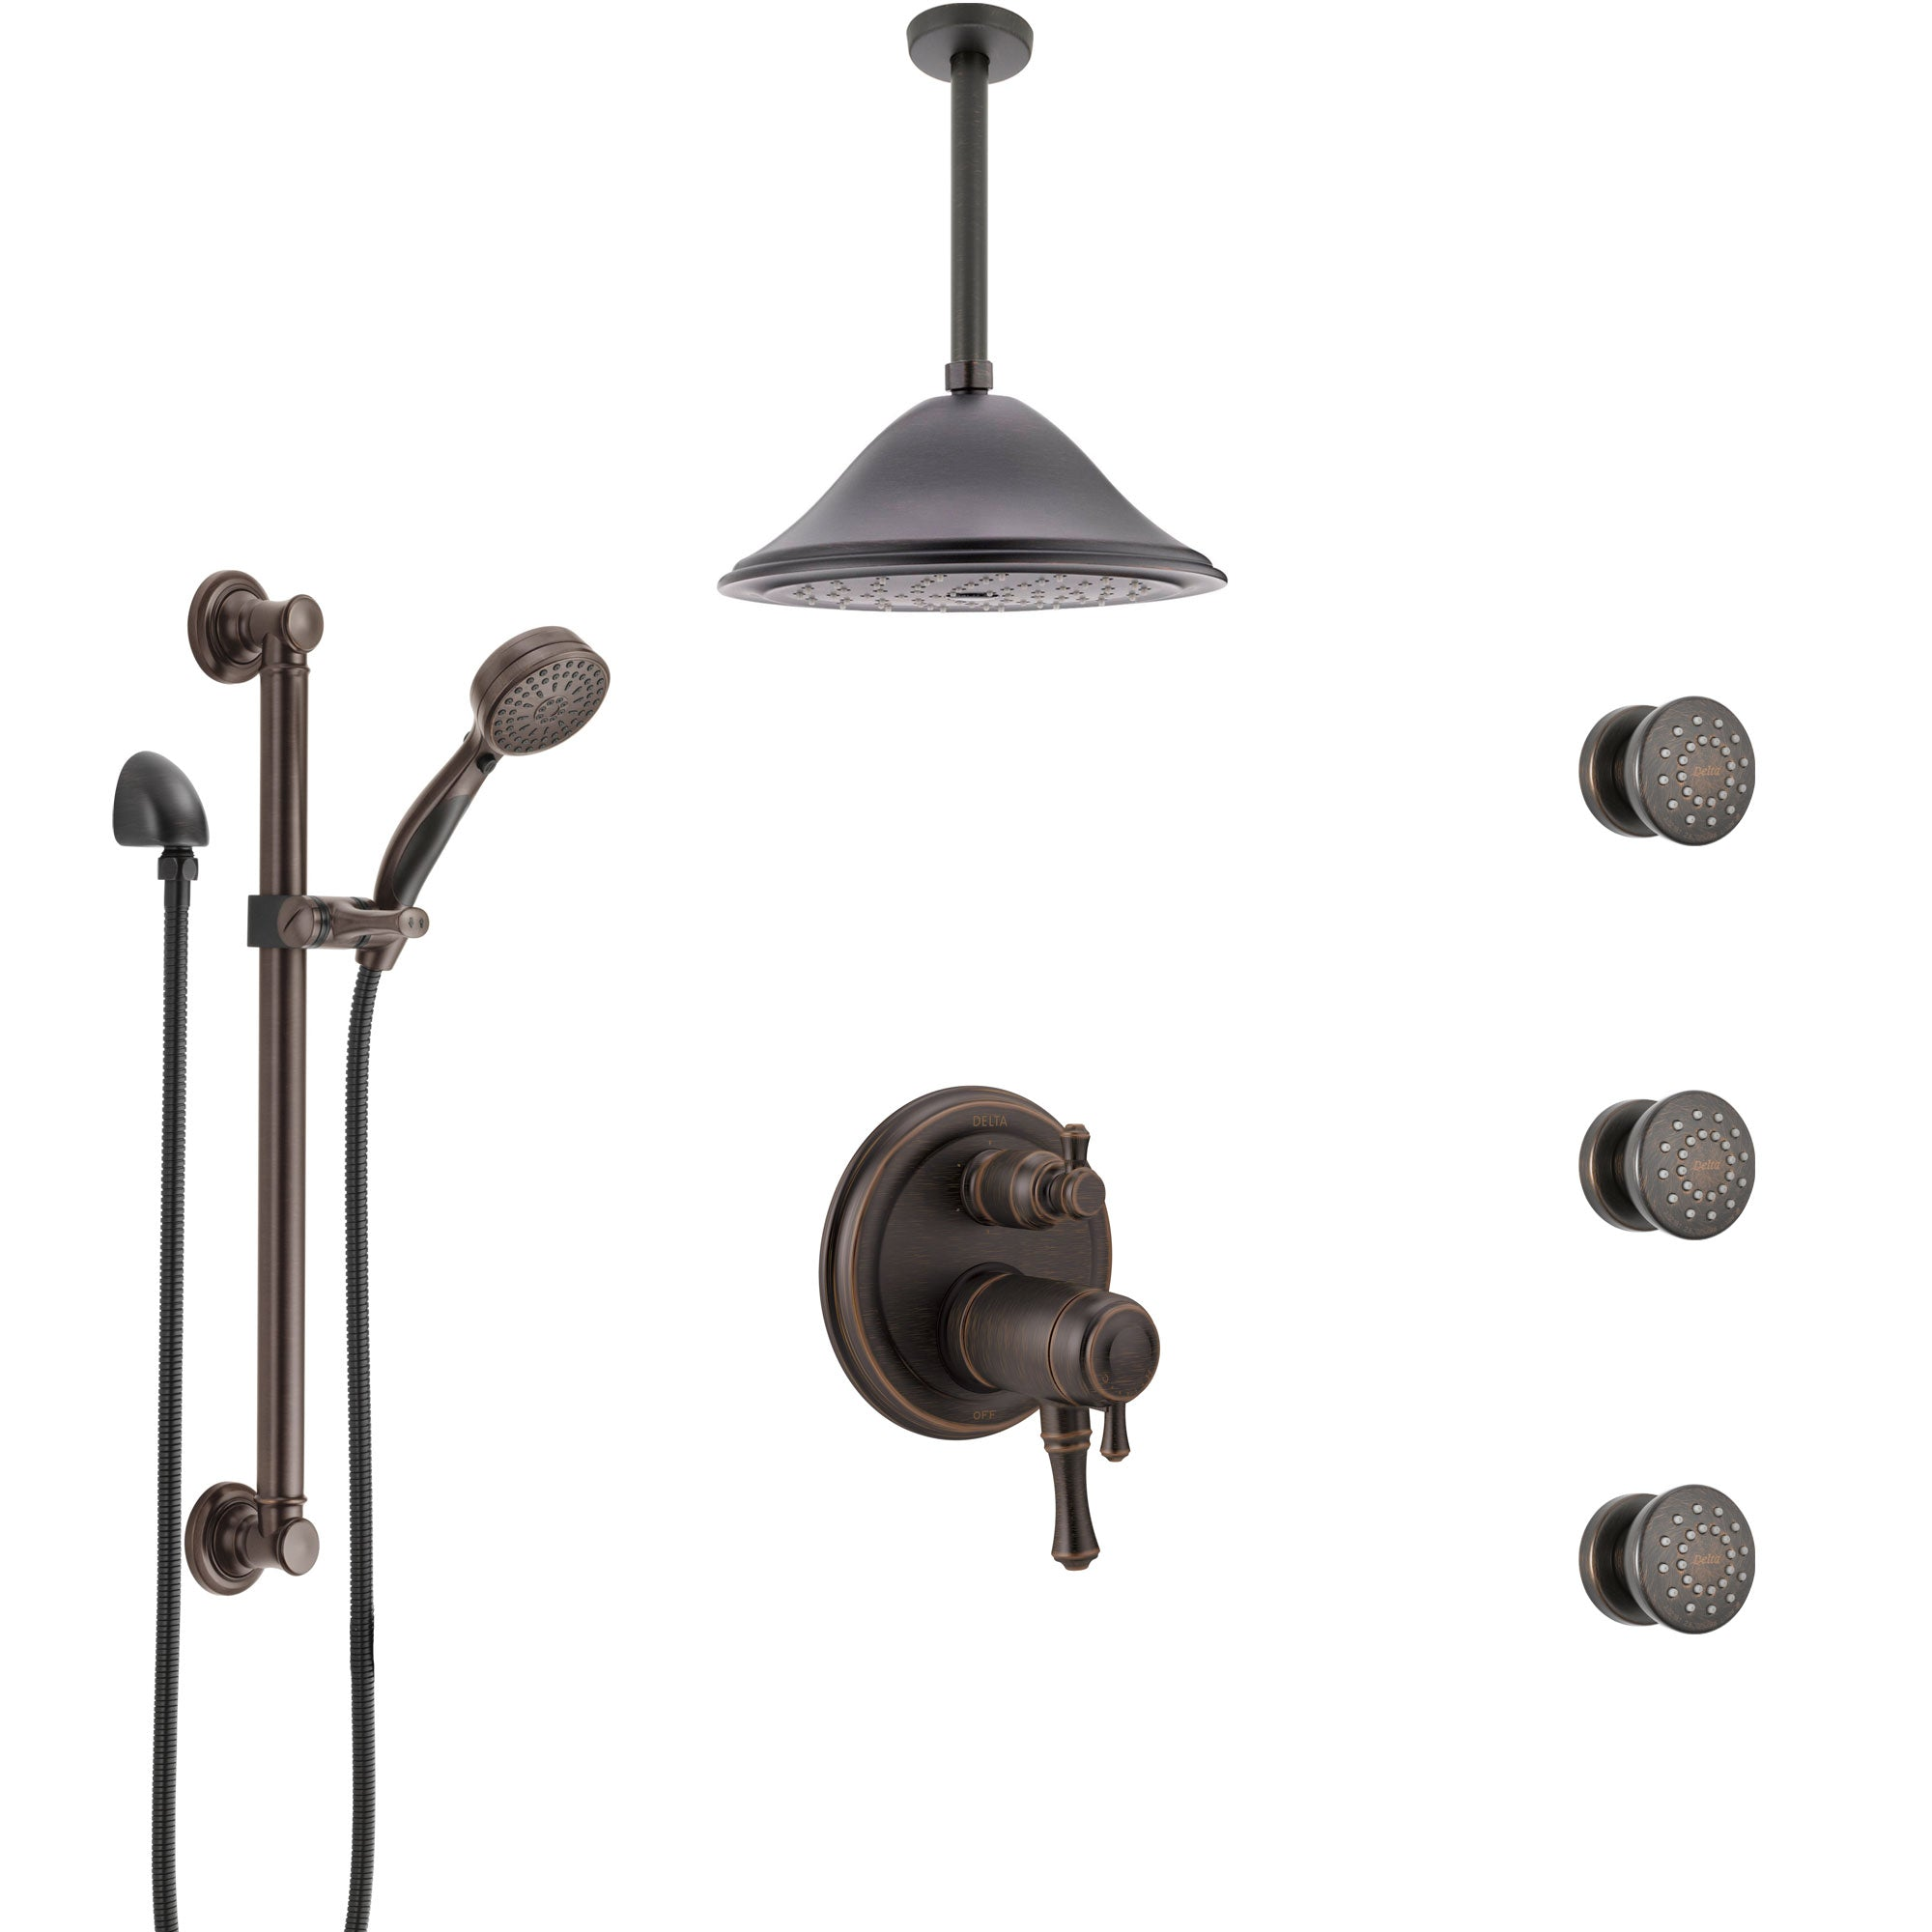 Delta Cassidy Venetian Bronze Dual Thermostatic Control Shower System, Ceiling Showerhead, 3 Body Jets, Grab Bar Hand Spray SS27T997RB10